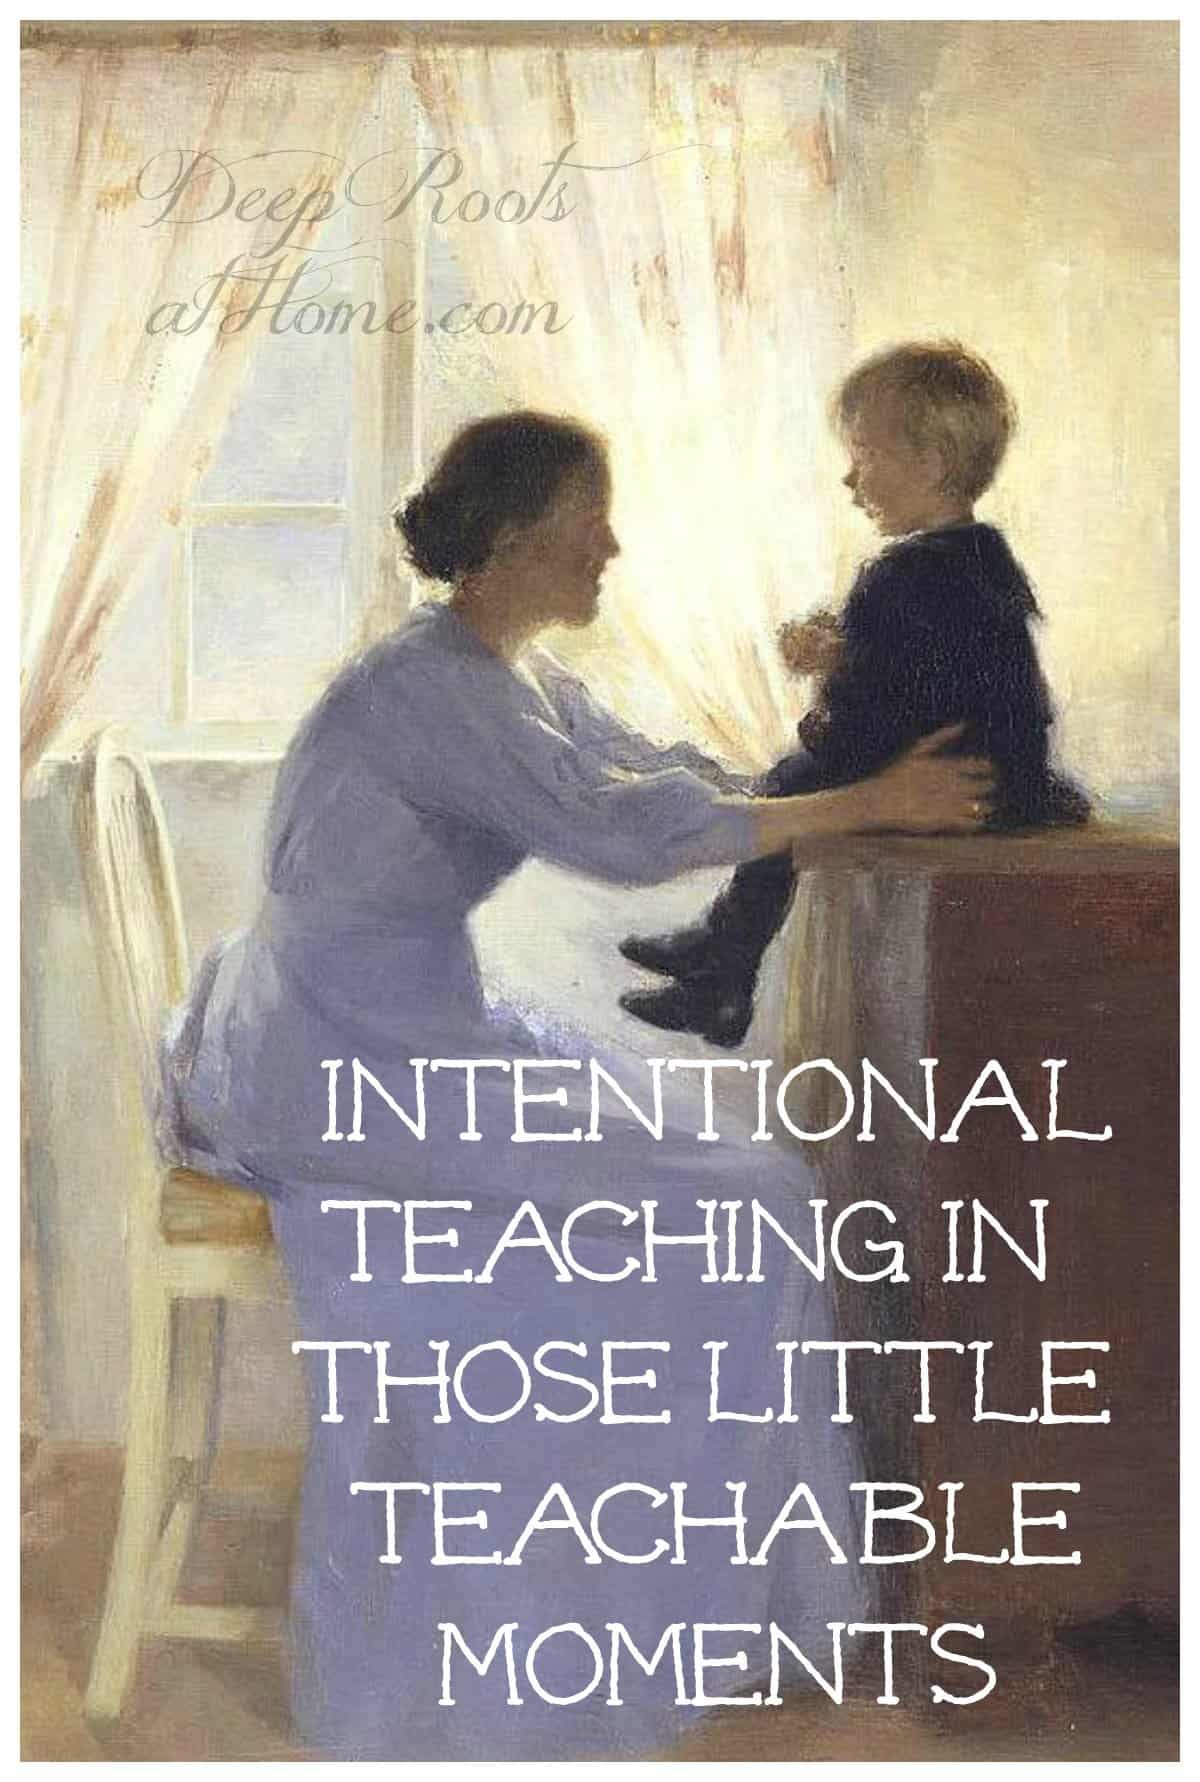 Intentional Teaching In Those Little Teachable Moments. 'Mother and Child' by Peter Ilsted